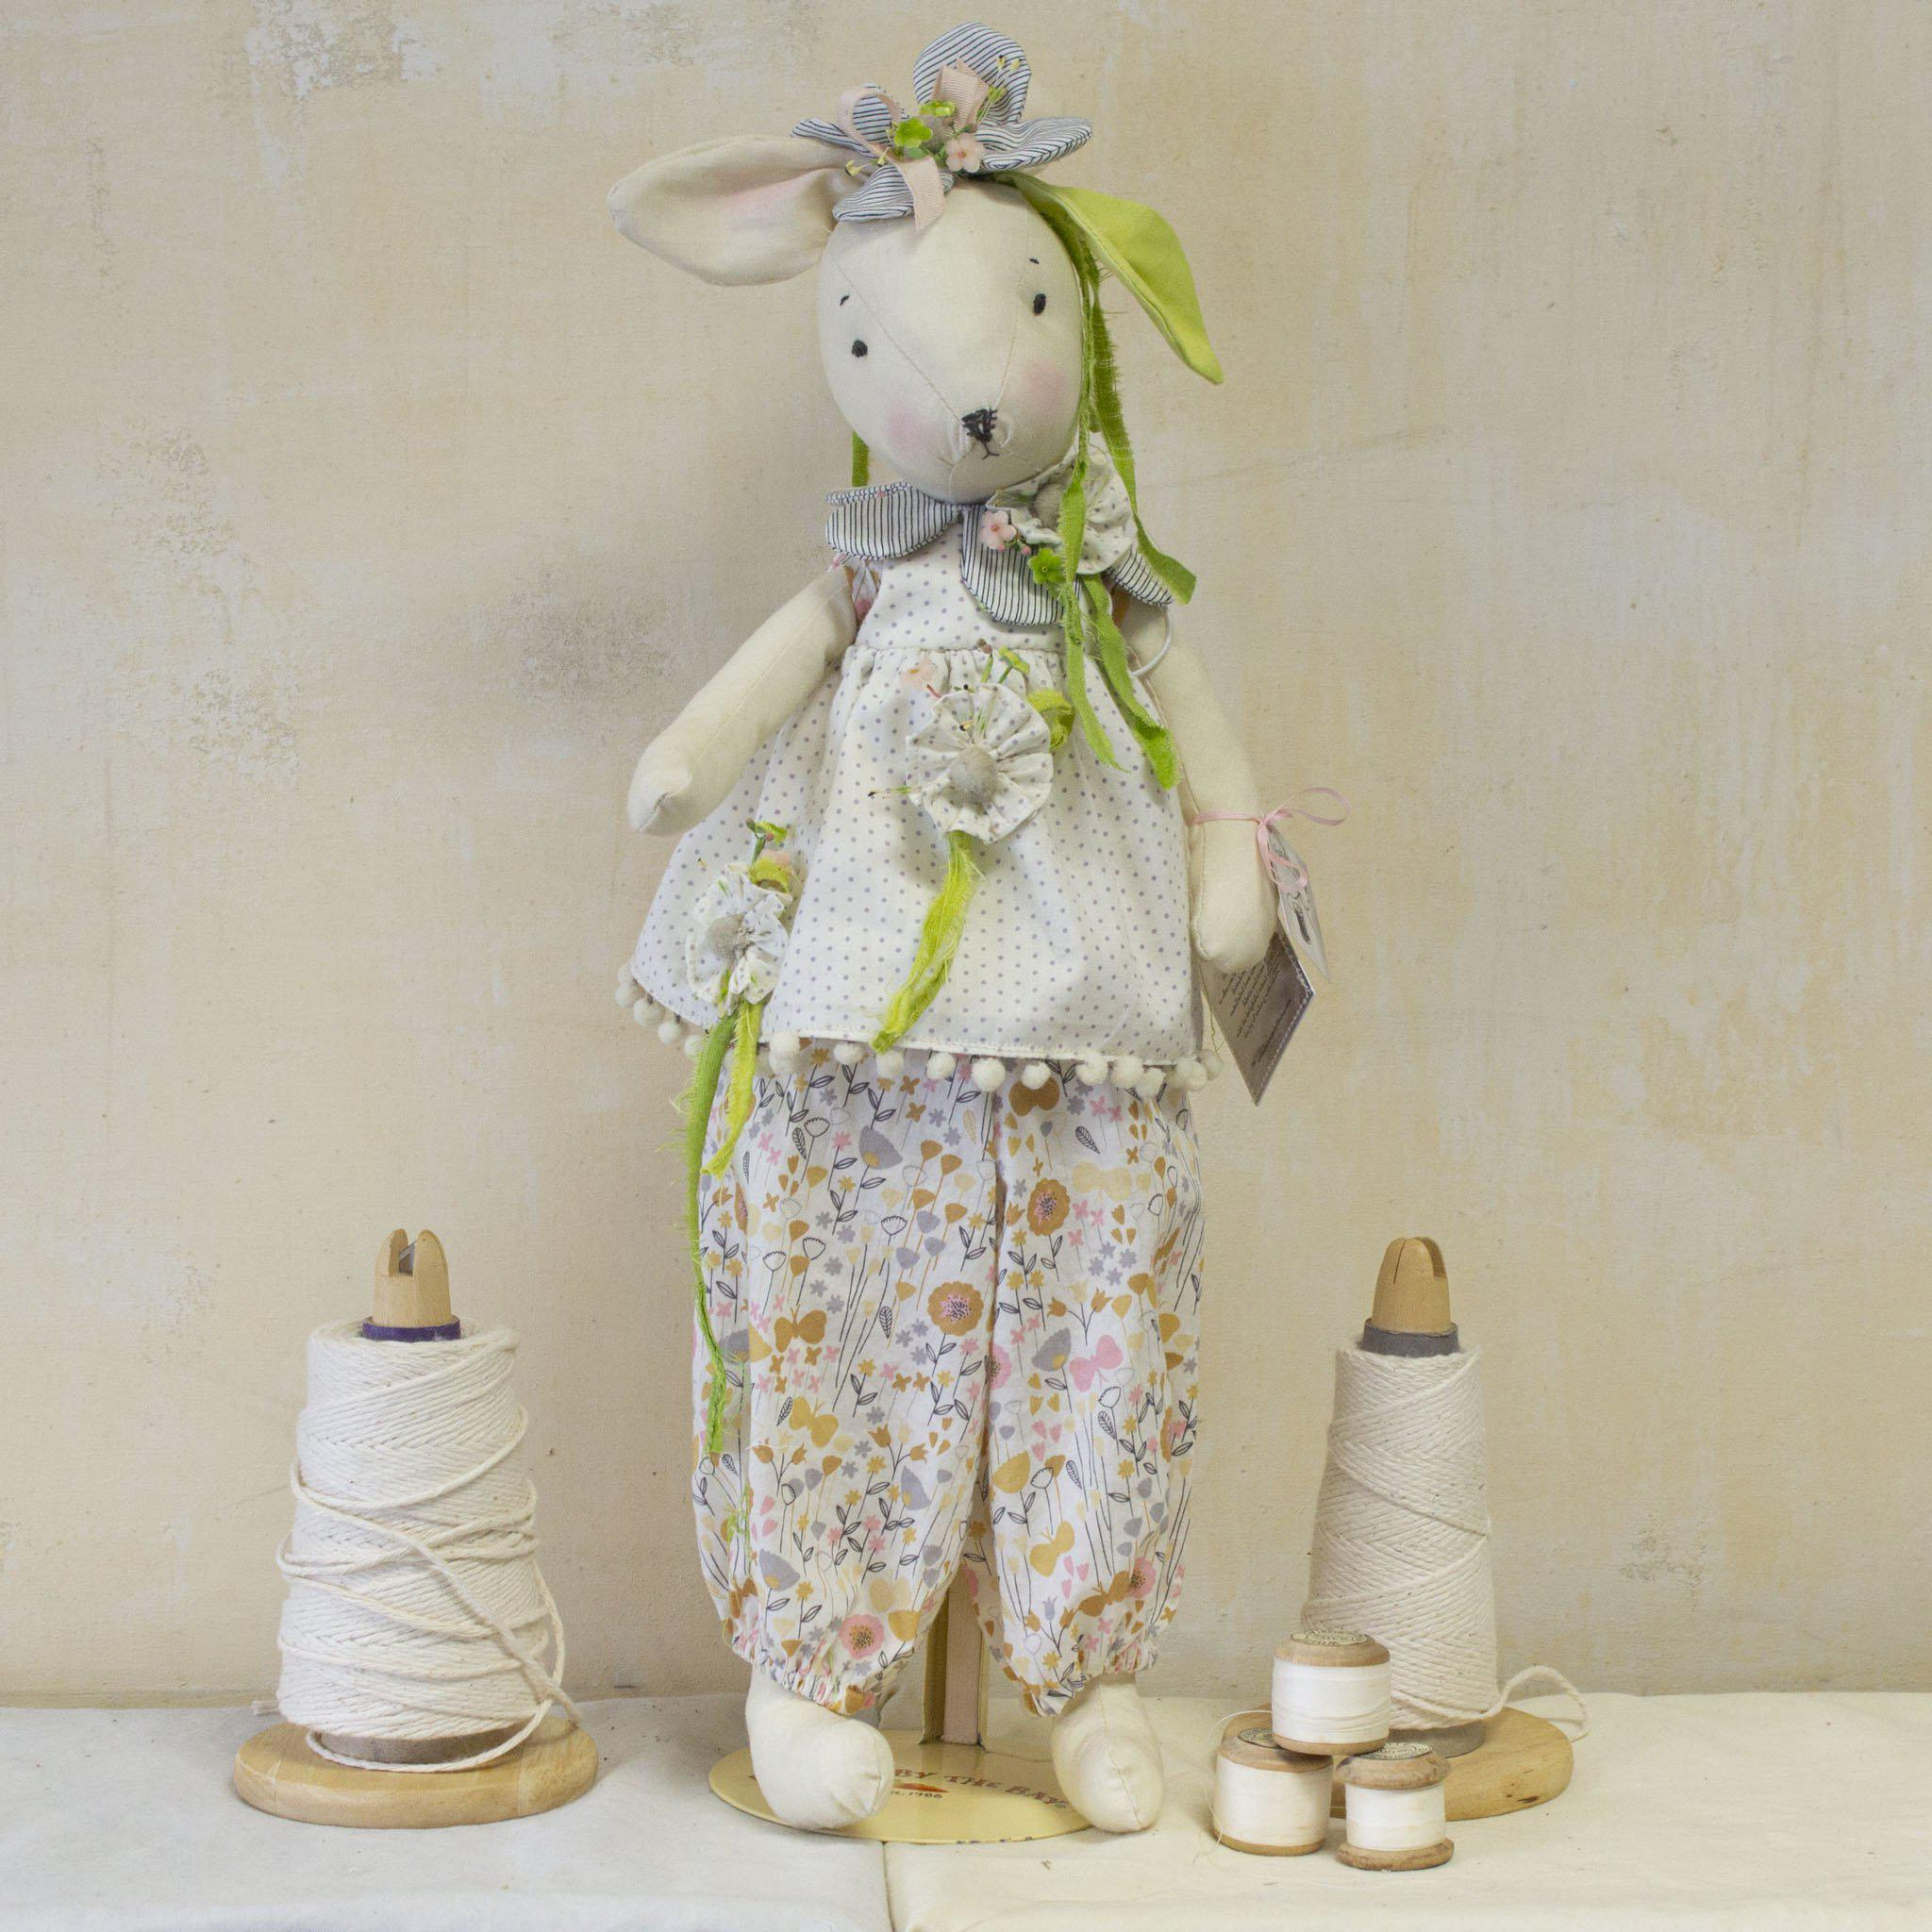 Hutch Studio - Tall Tillie - One Of A Kind Bunny